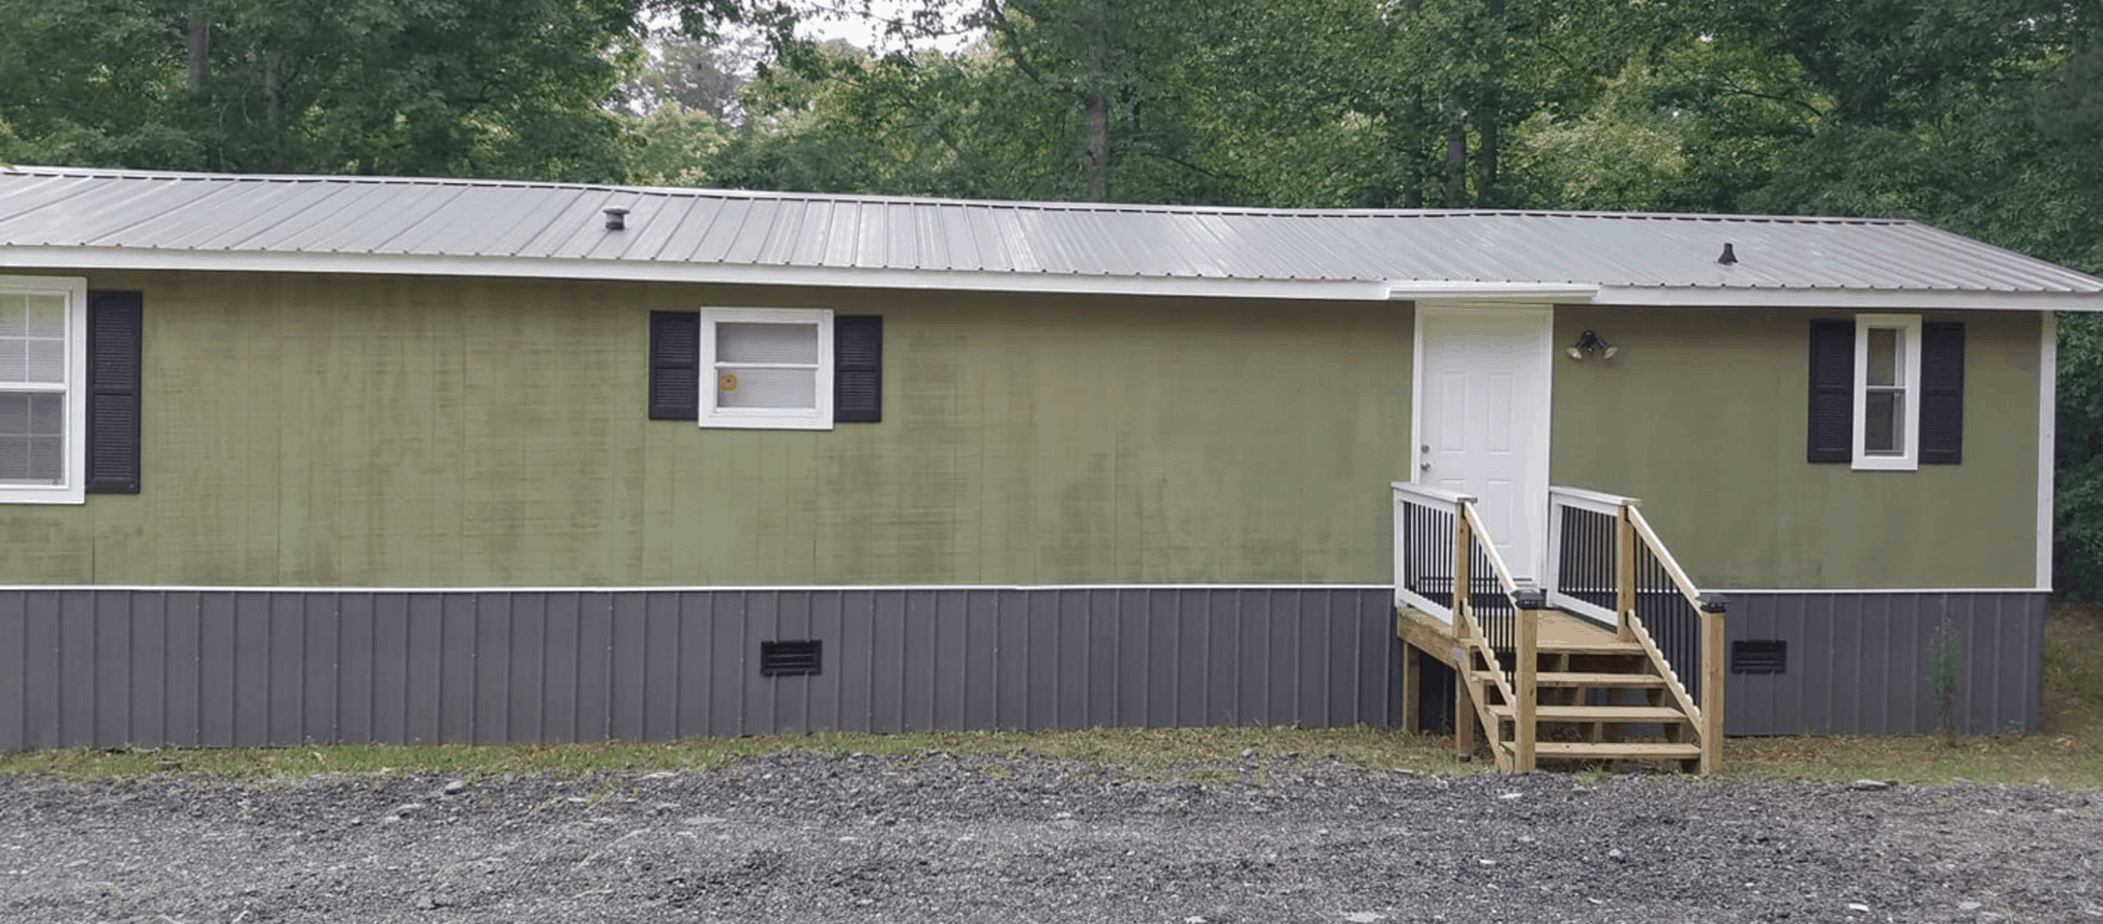 T11 Siding painted green on single wide mobile home